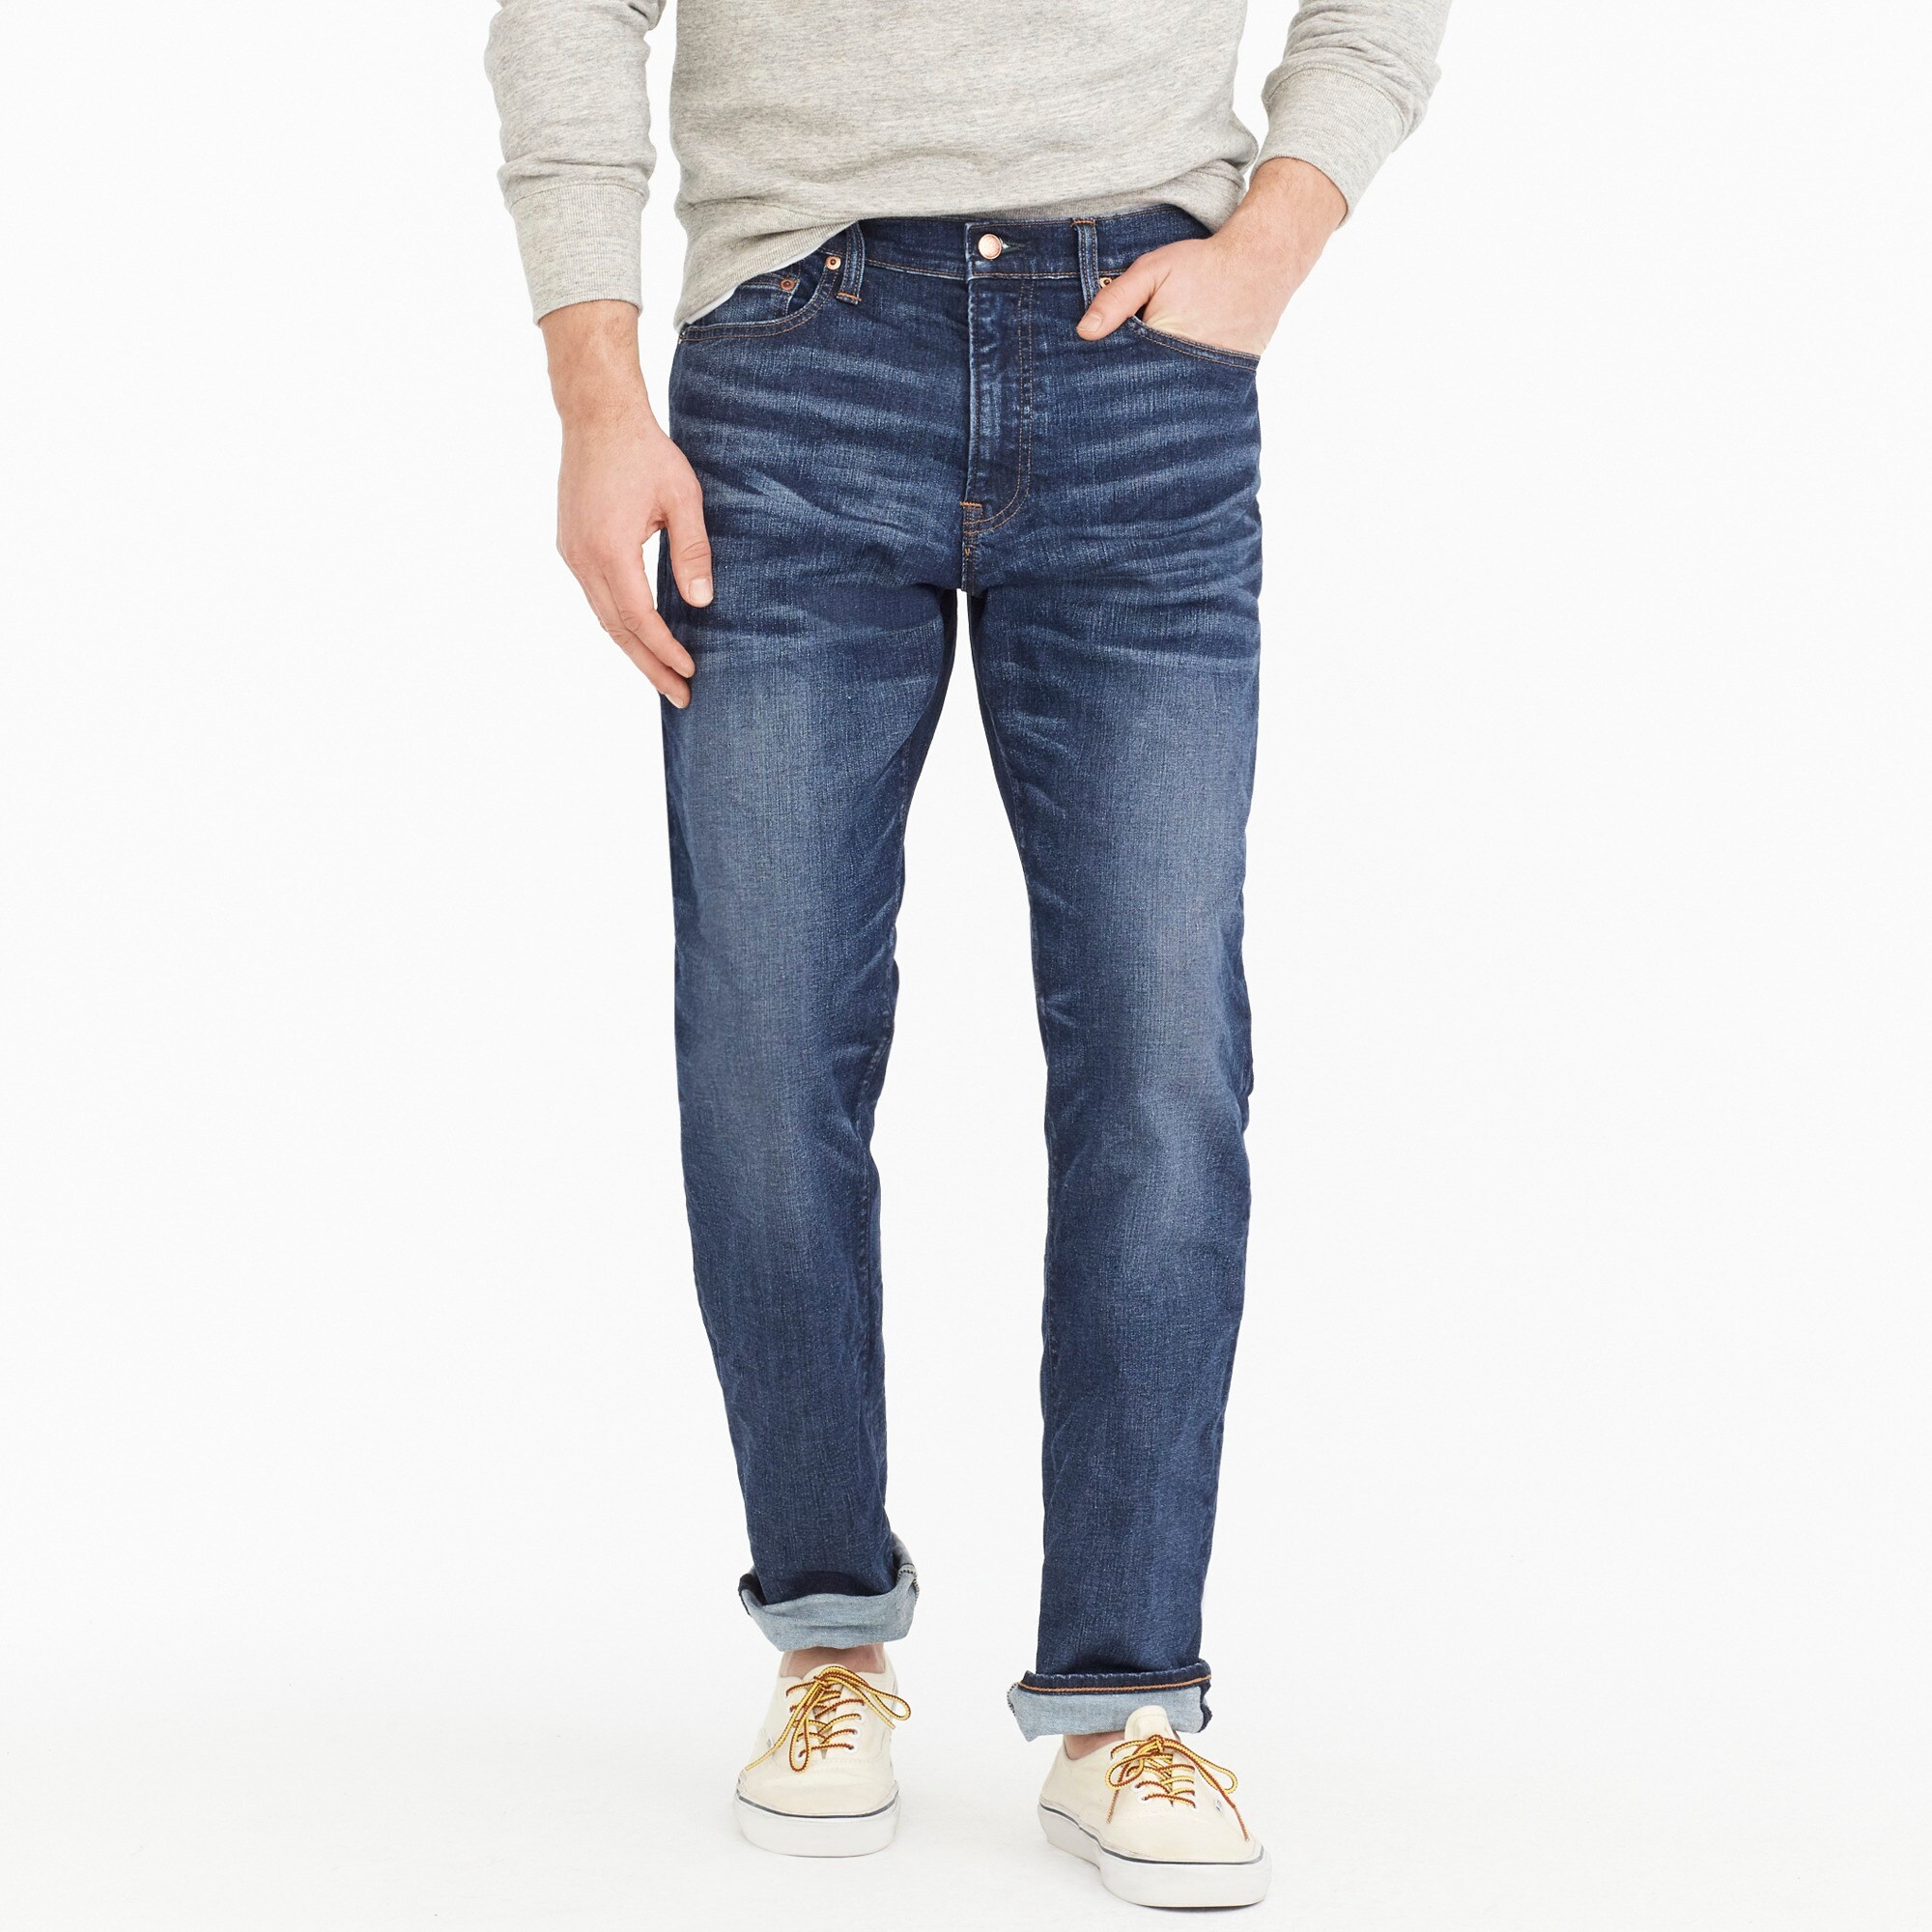 1040 athletic-fit stretch jean in dalton wash - men's pants